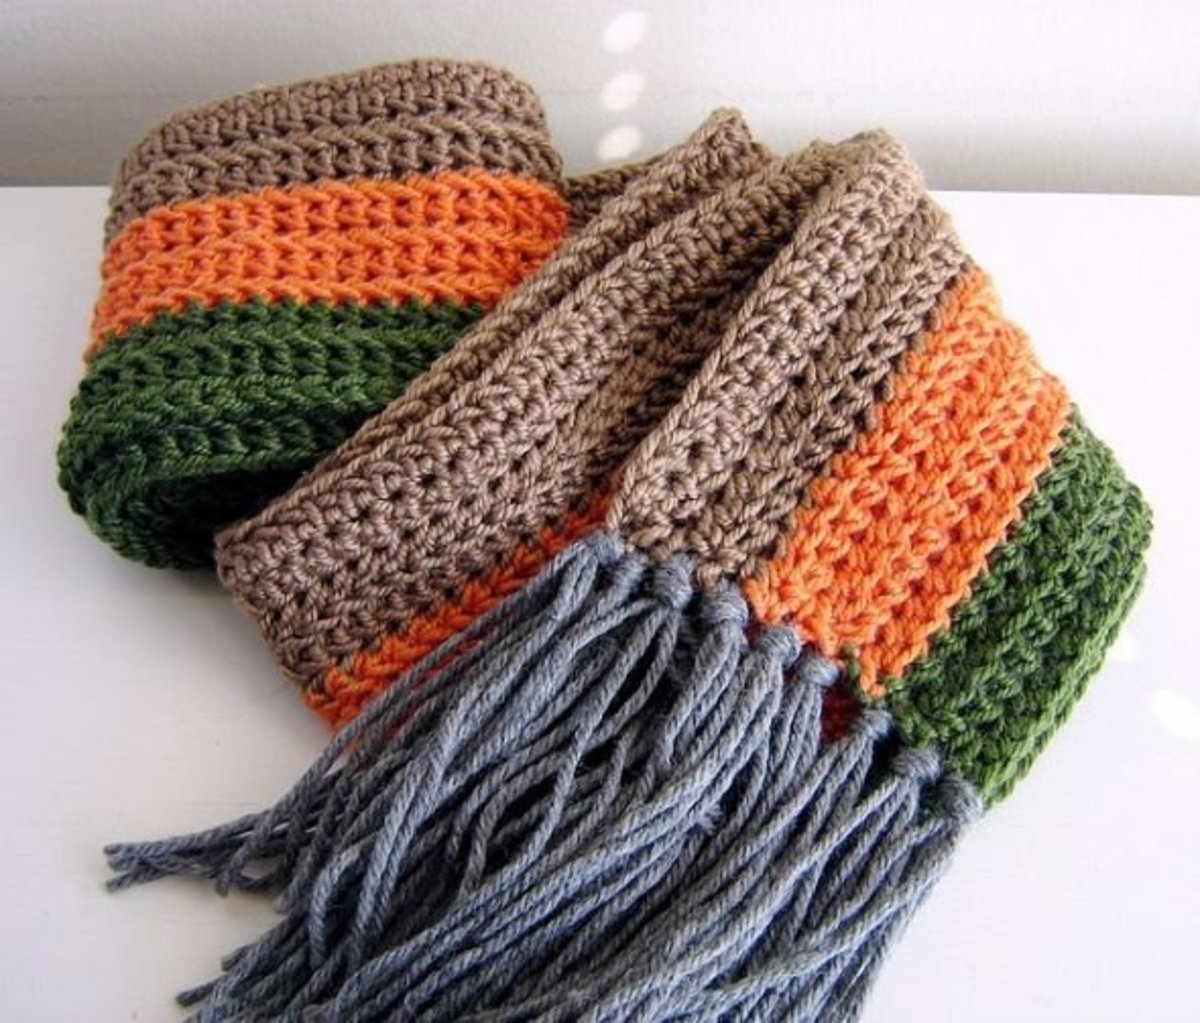 Crochet Scarf Autumn Colors